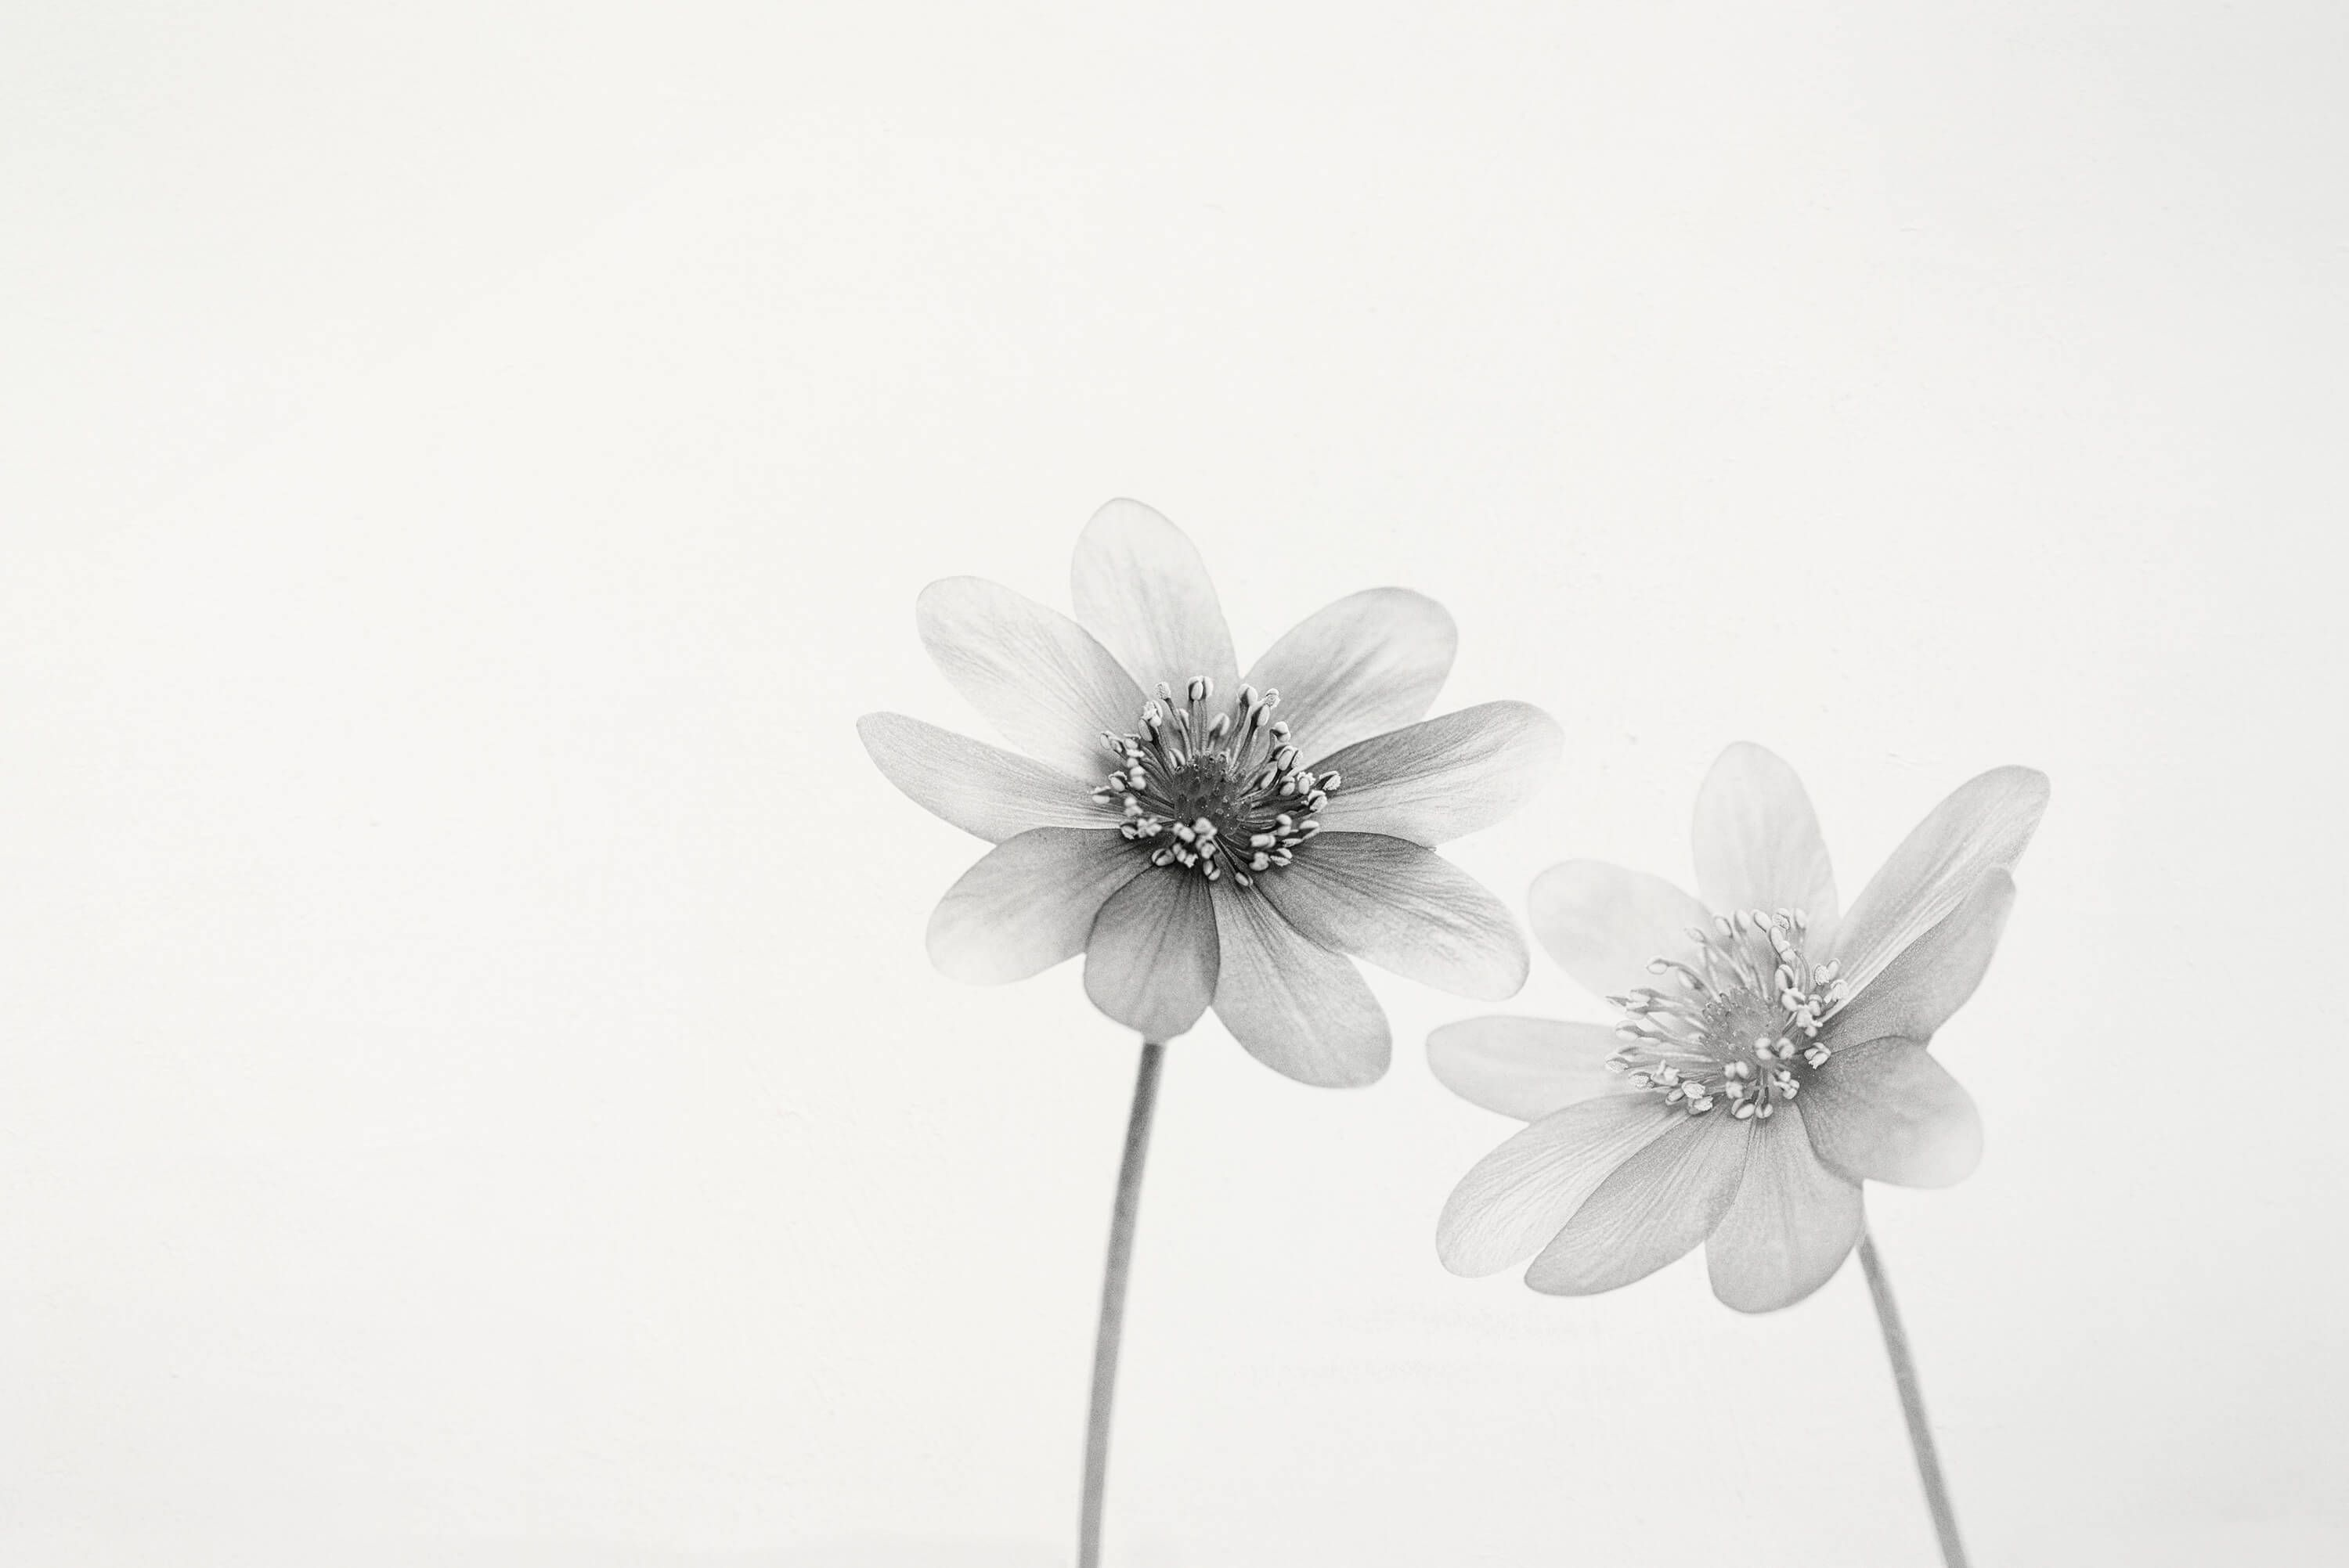 Two small flowers